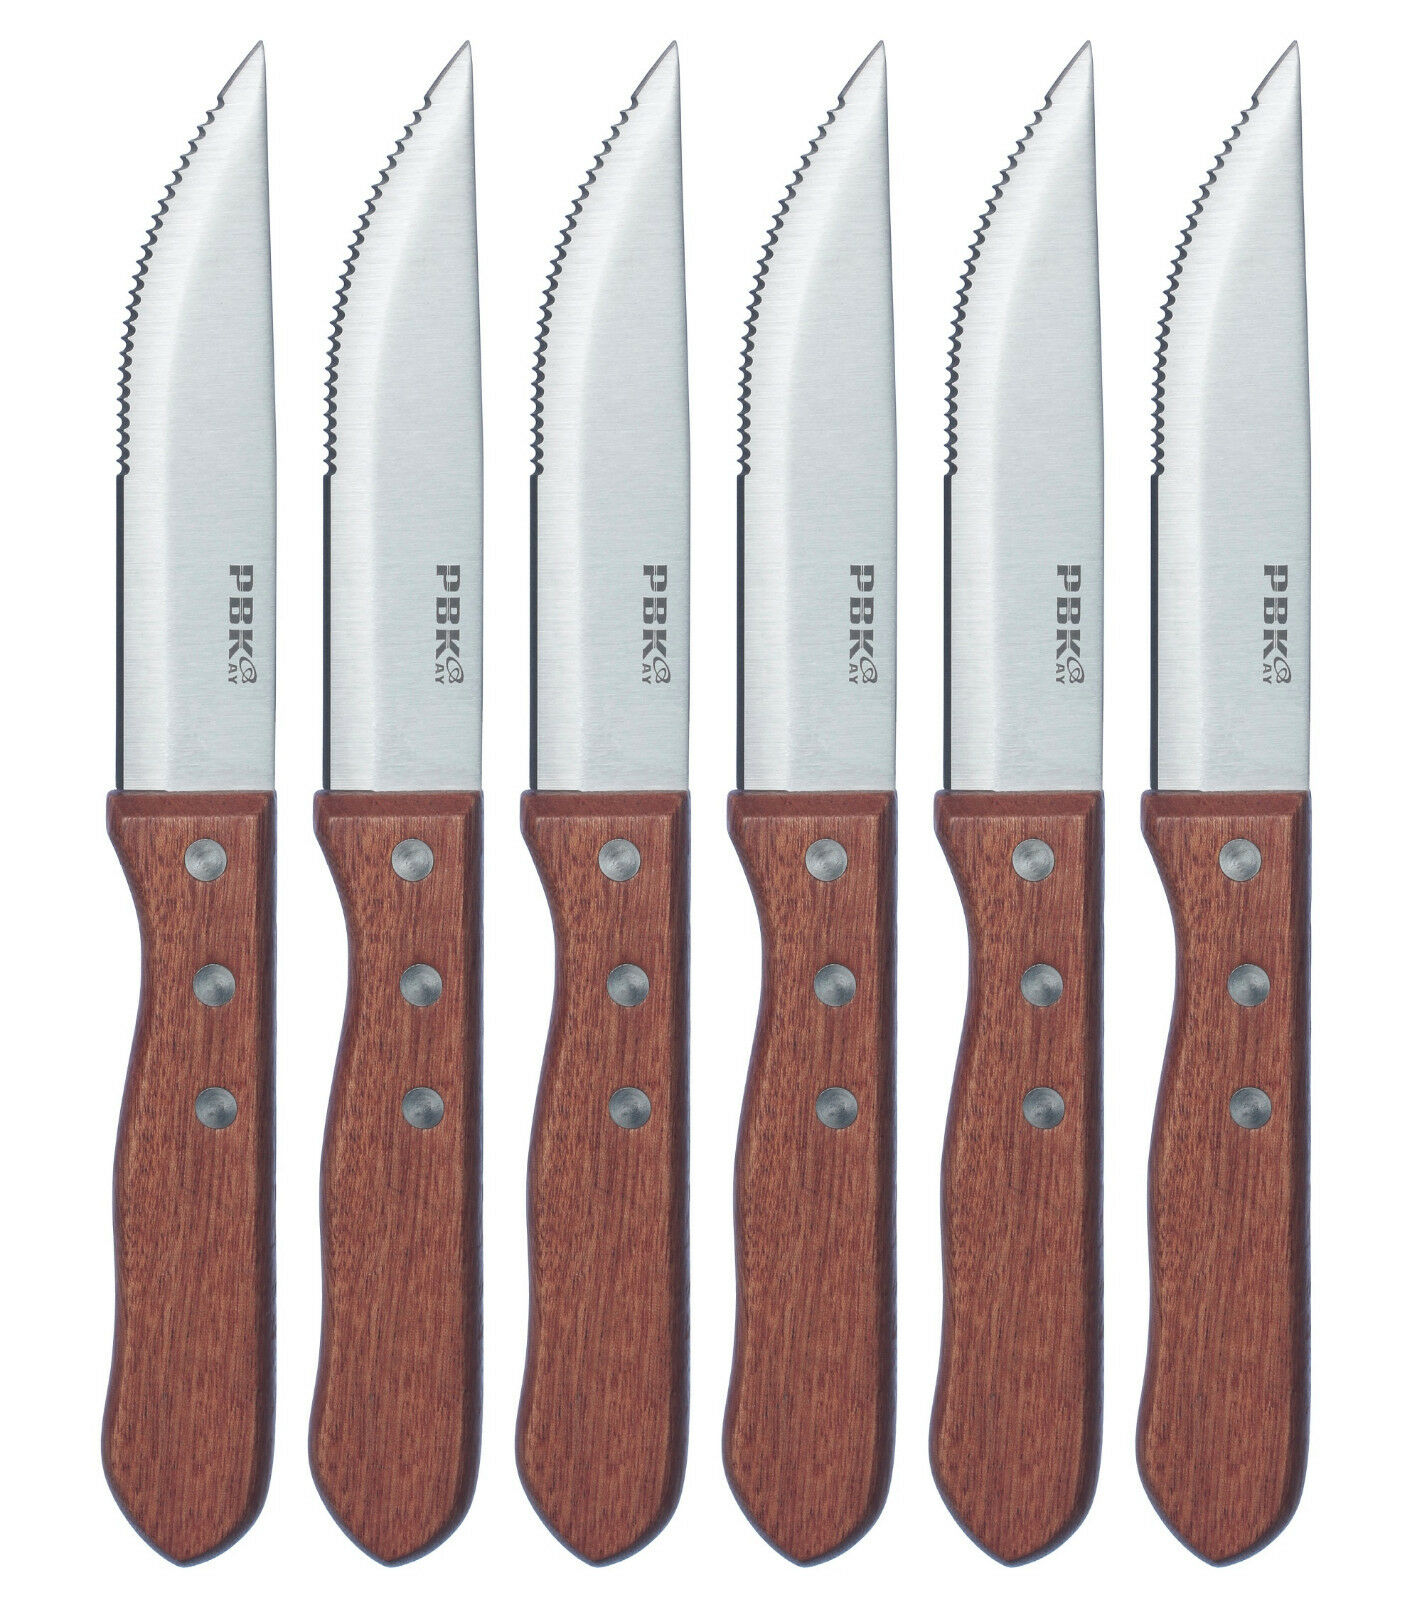 Steak Knife Set / Premium Stainless steel Knives and Gift Bo